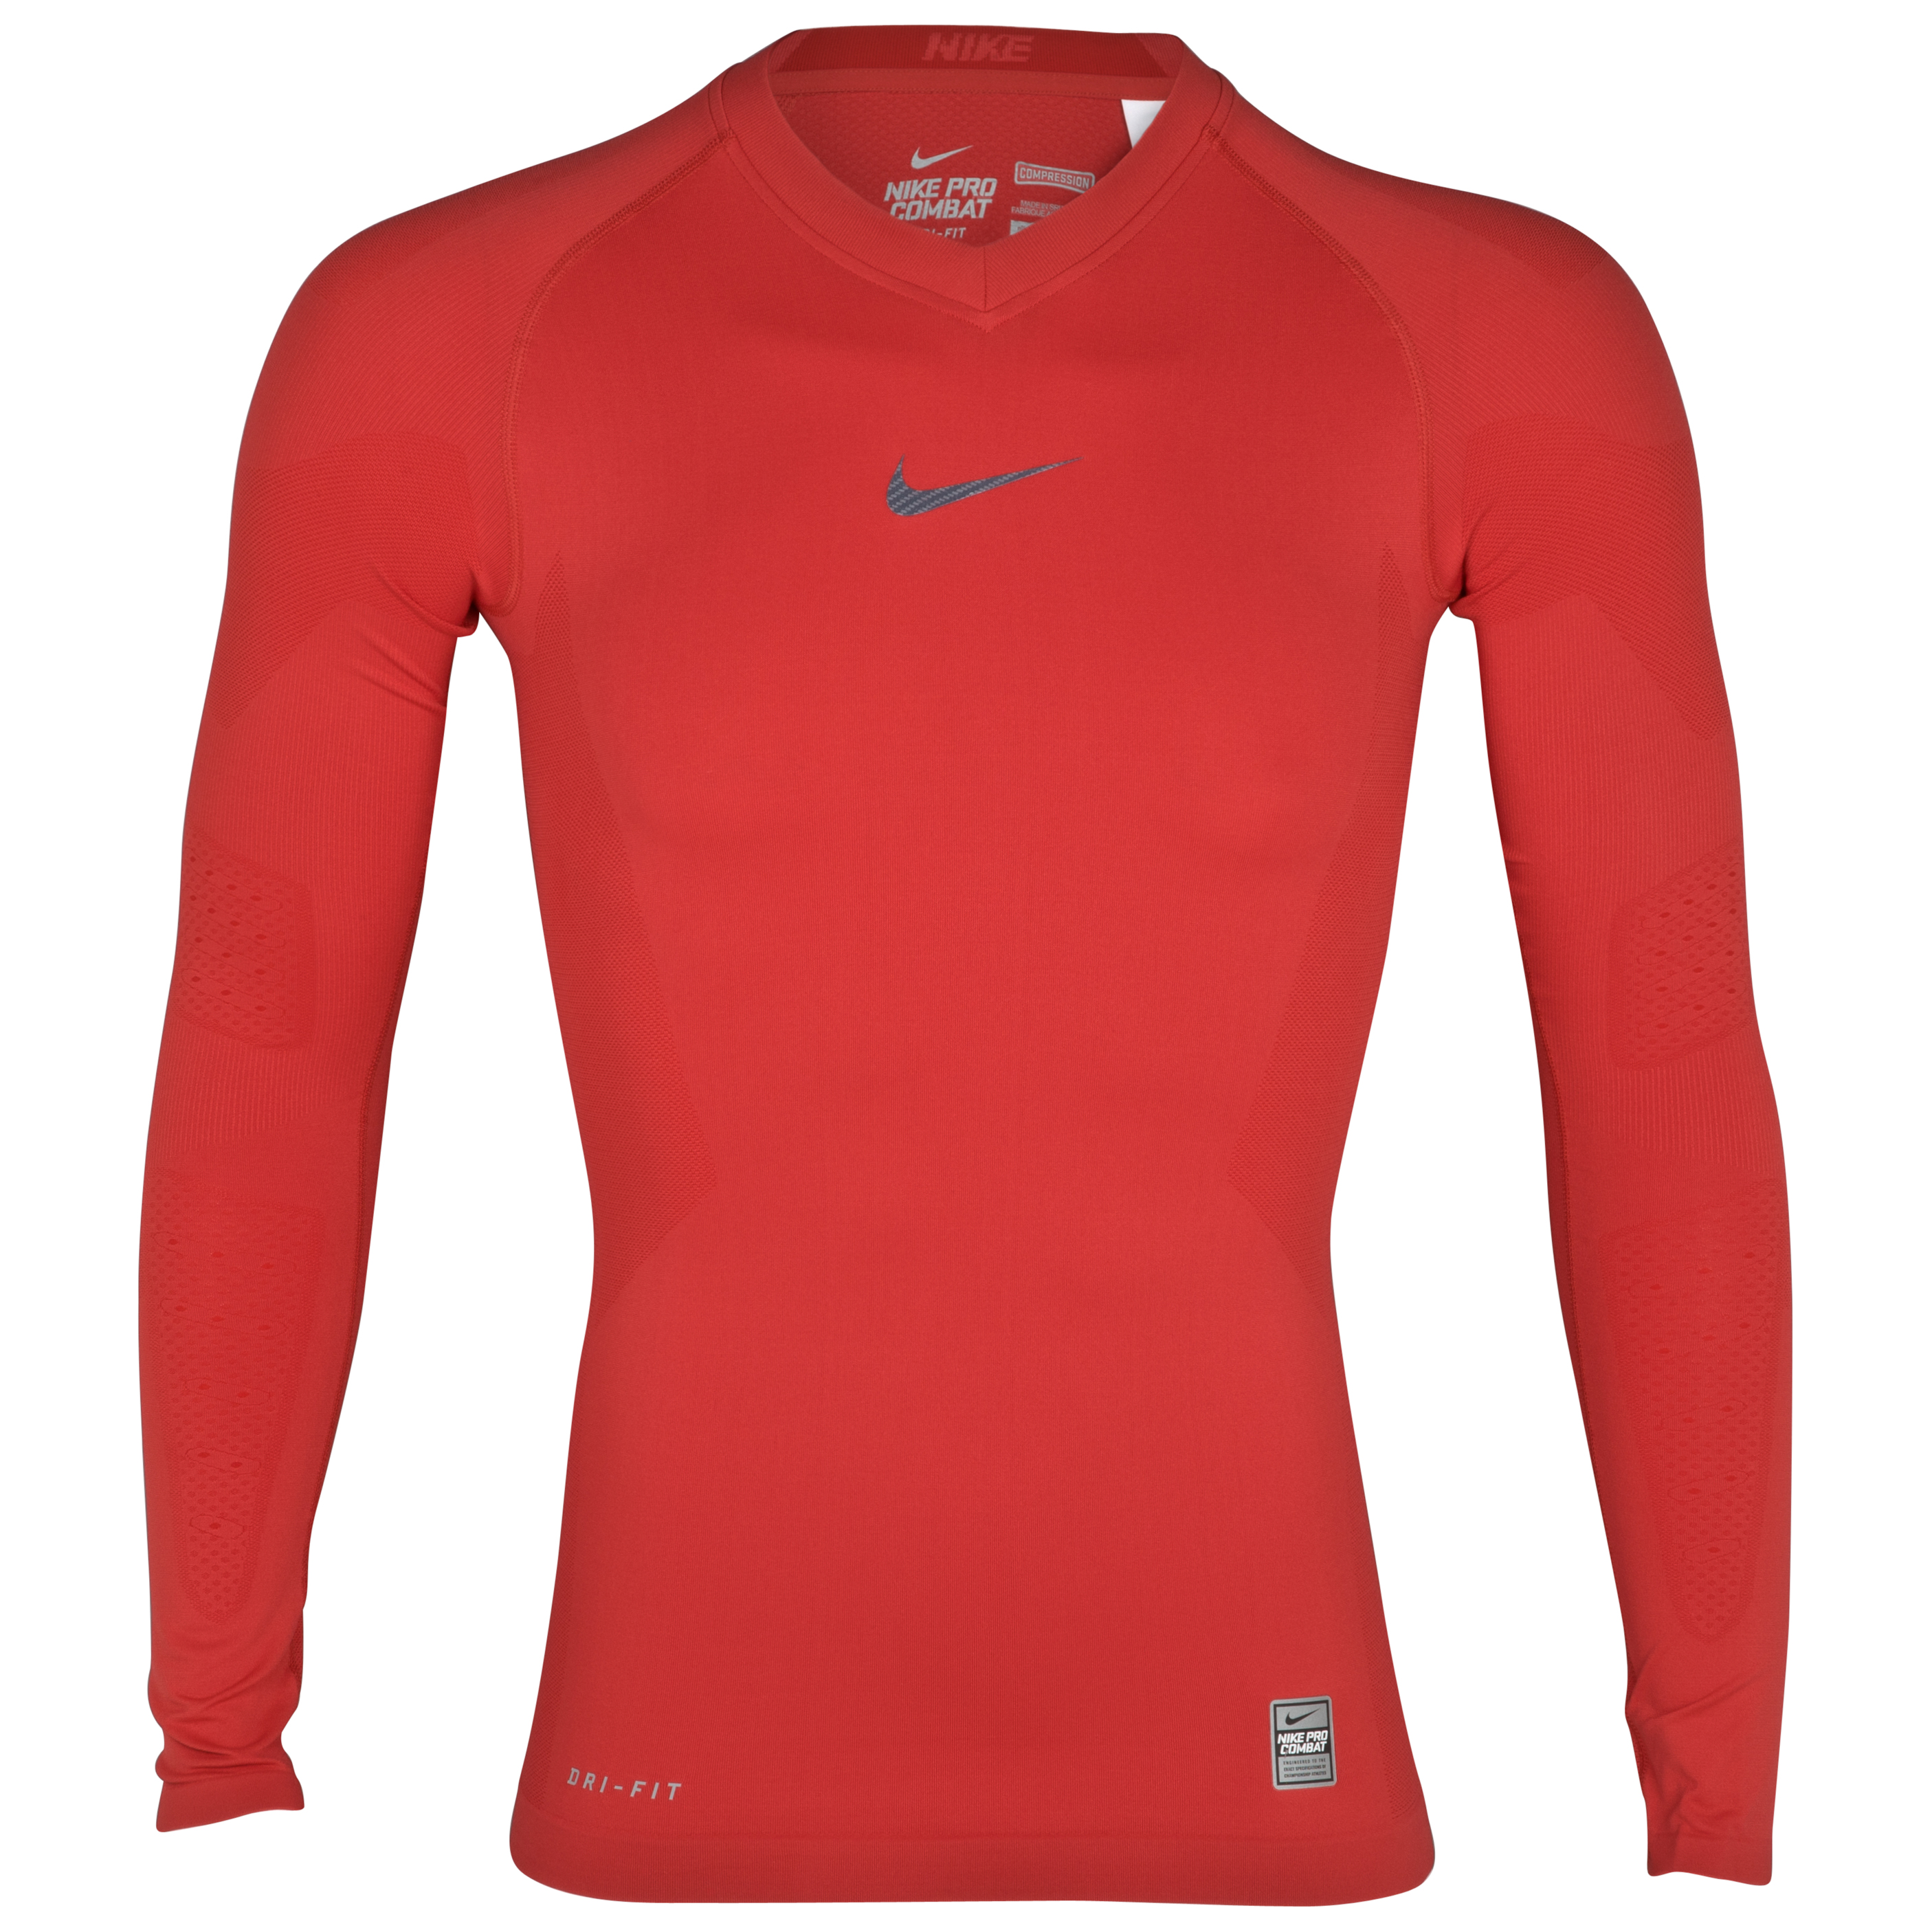 Nike Pro Combat Hypercool Vapor Top - Sport Red - Long Sleeve